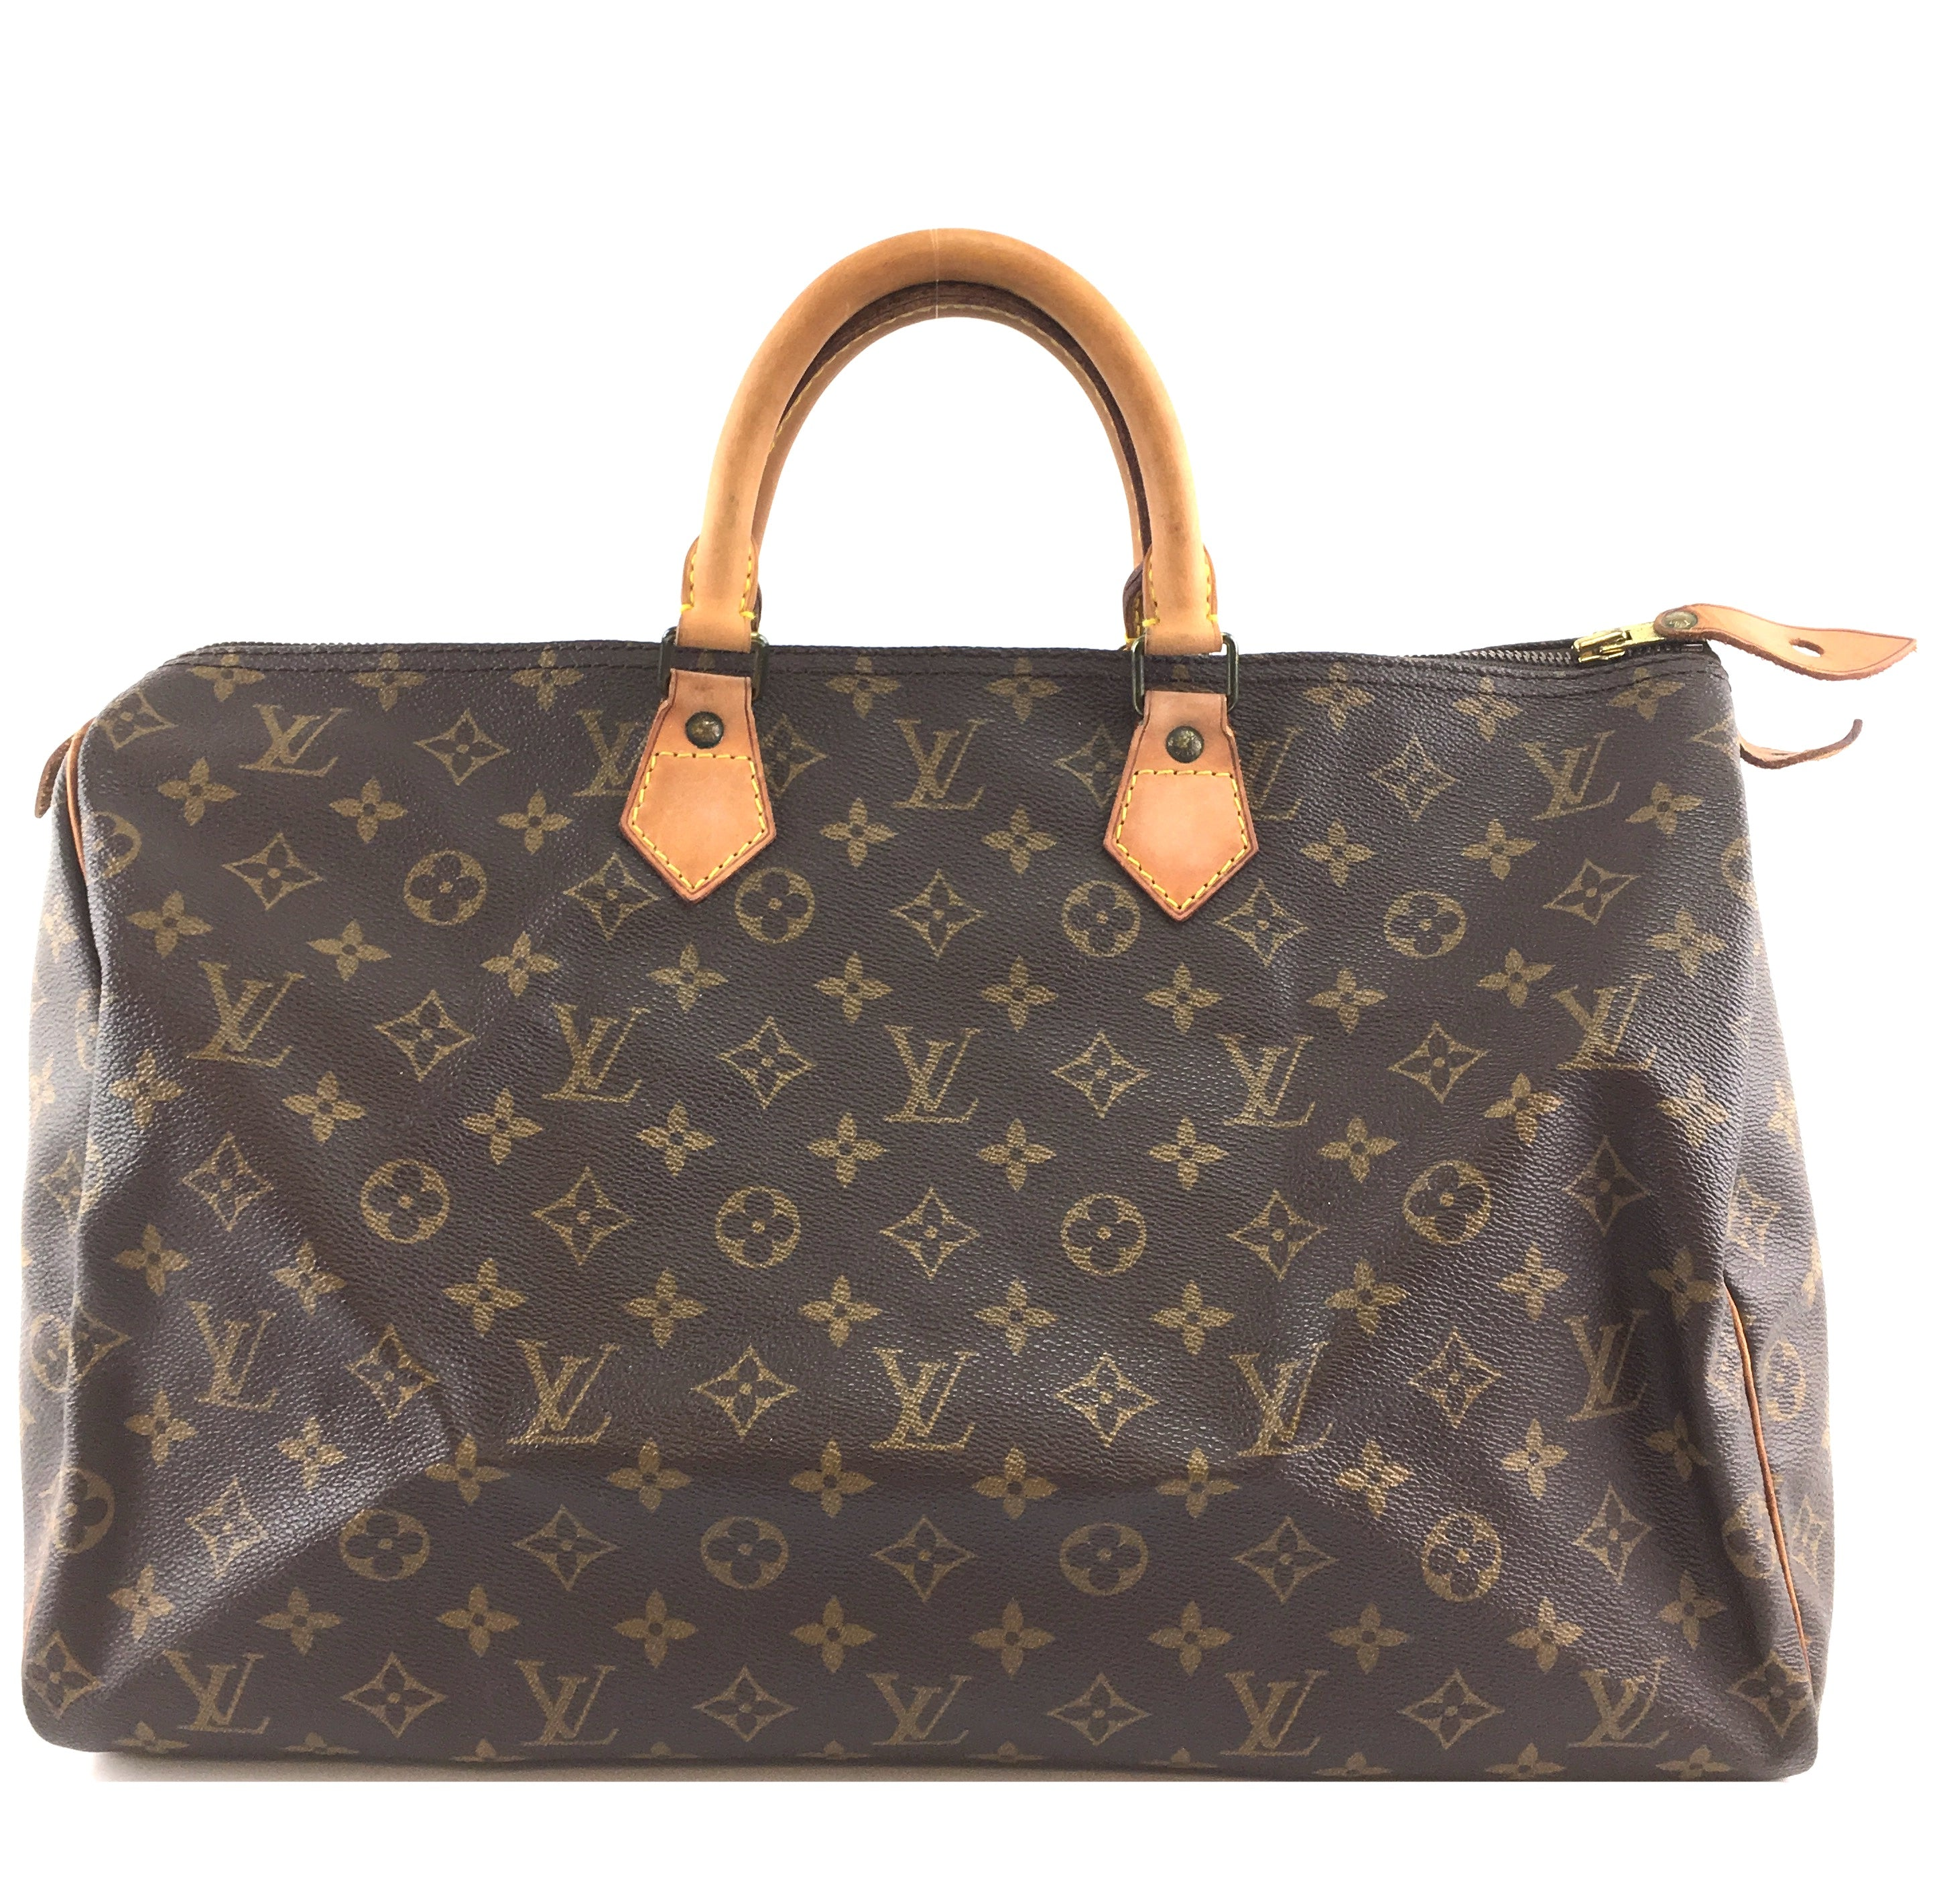 Louis Vuitton Speedy 40 Monogram Canvas